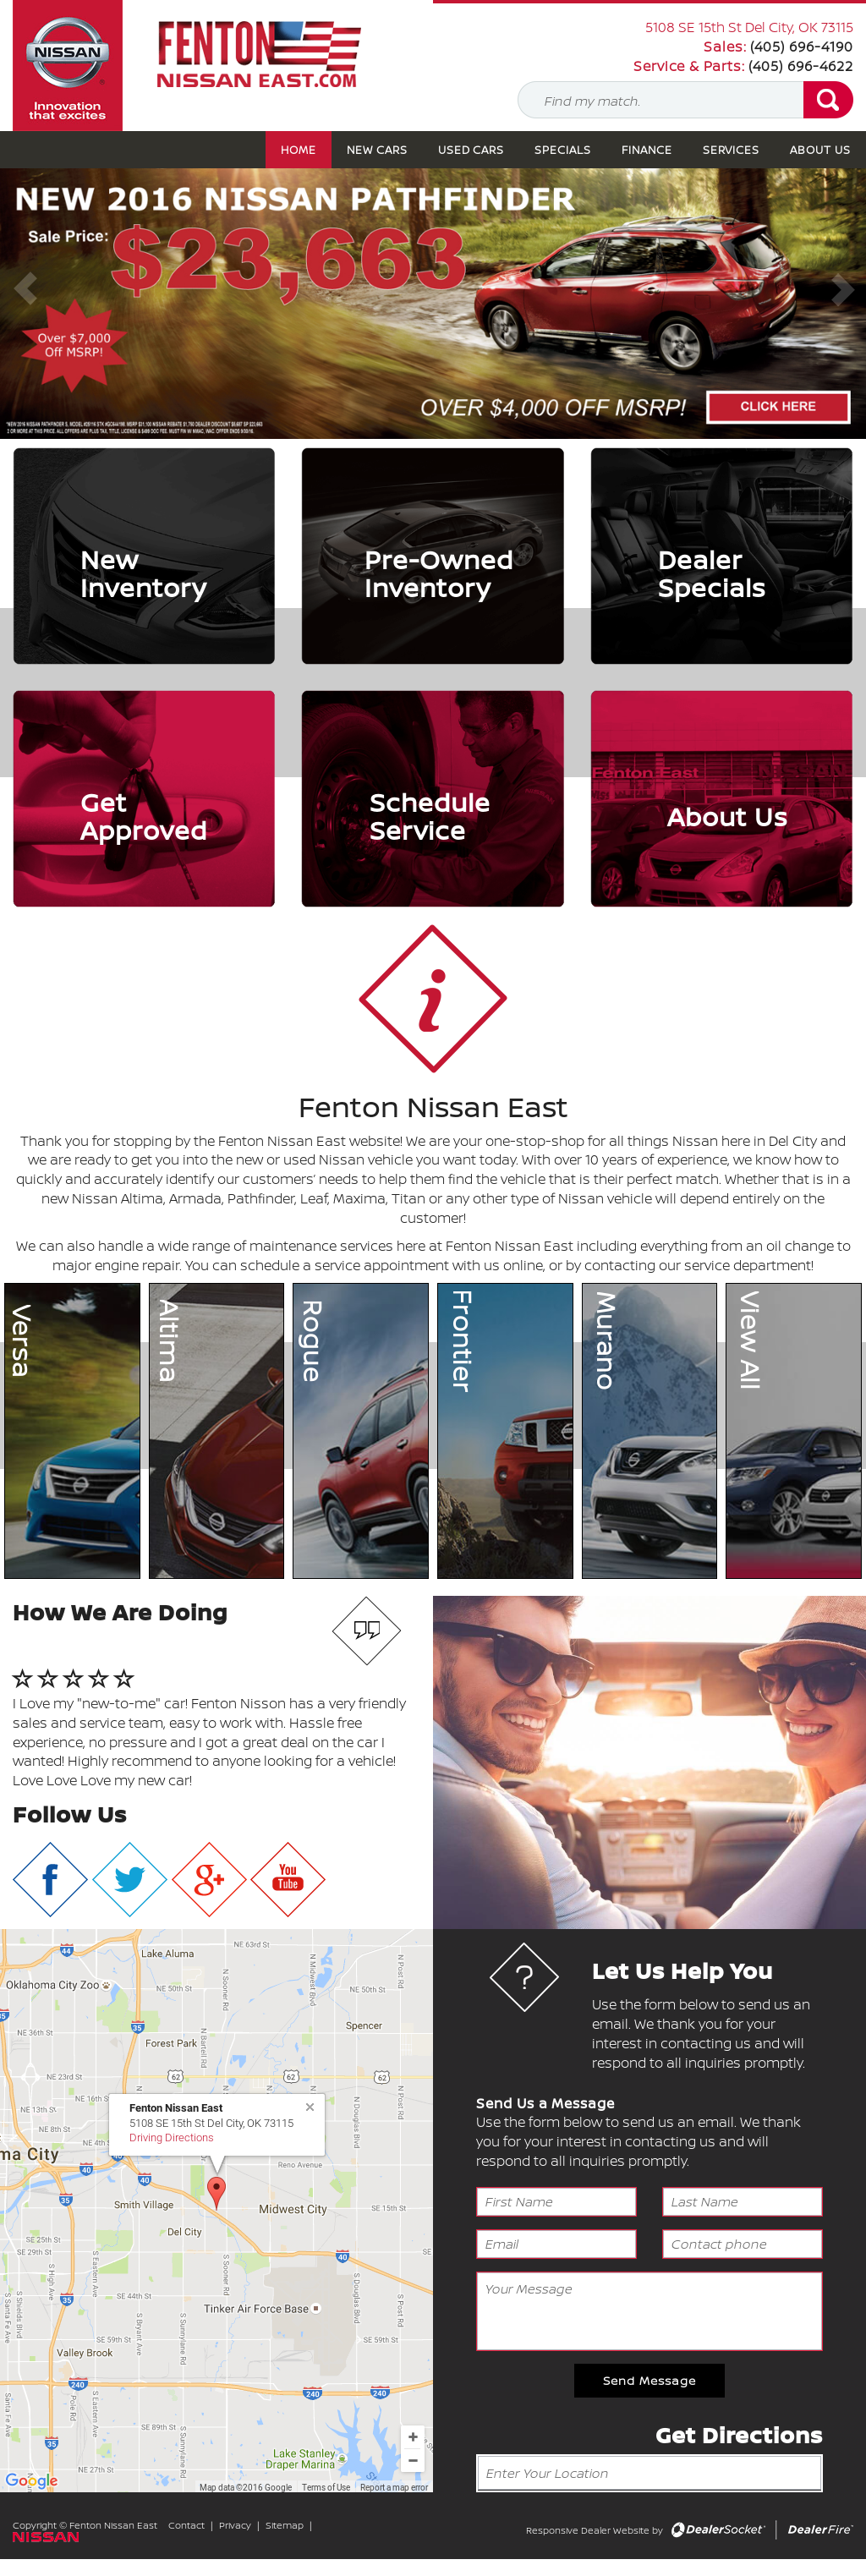 Fenton Nissan East >> Fenton Nissan East Competitors Revenue And Employees